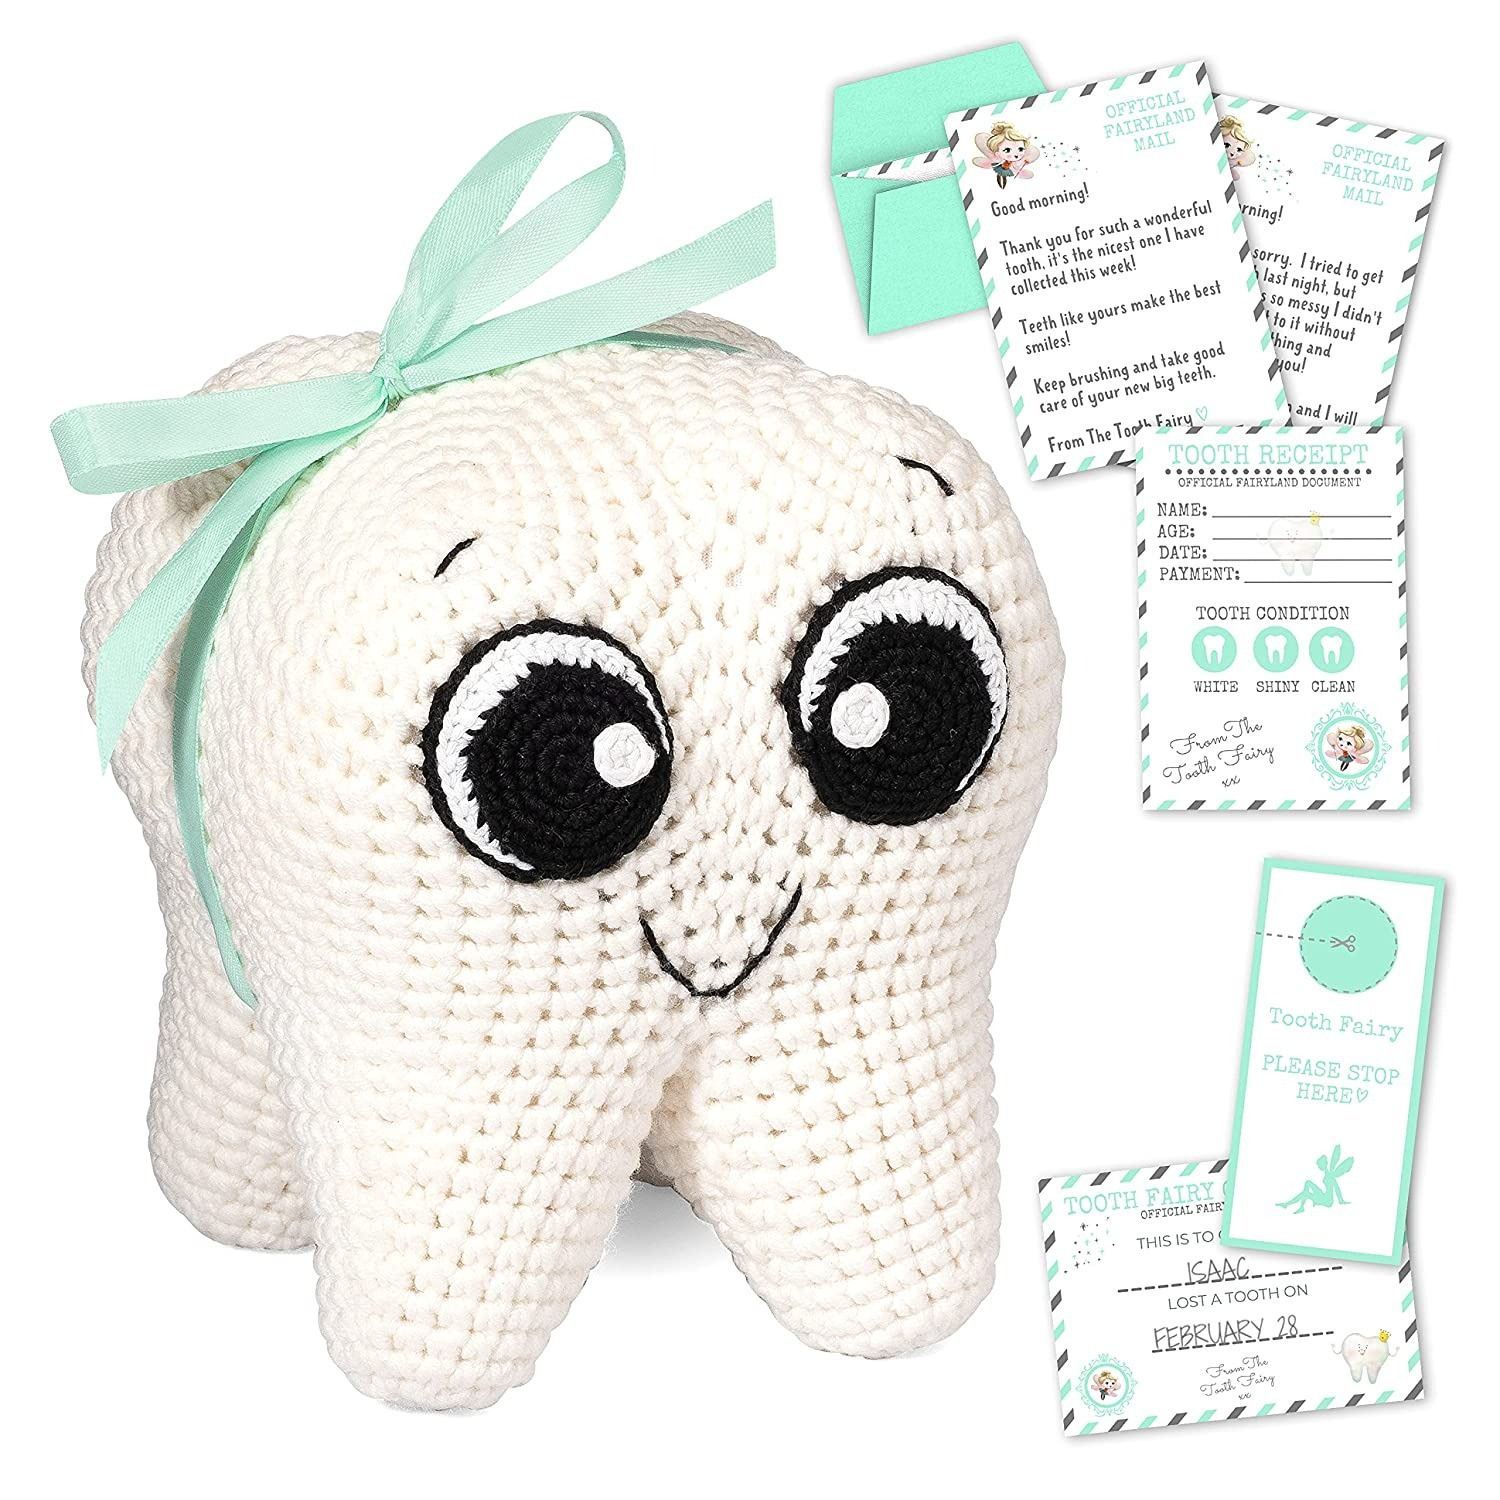 SOVANO Tooth Fairy Pillow Kit for Girls and Boys - Tooth Fairy Box and Tooth Fairy Kit and Keepsakes - Toothfairy Pouch for Lost Teeth and Money - Tooth